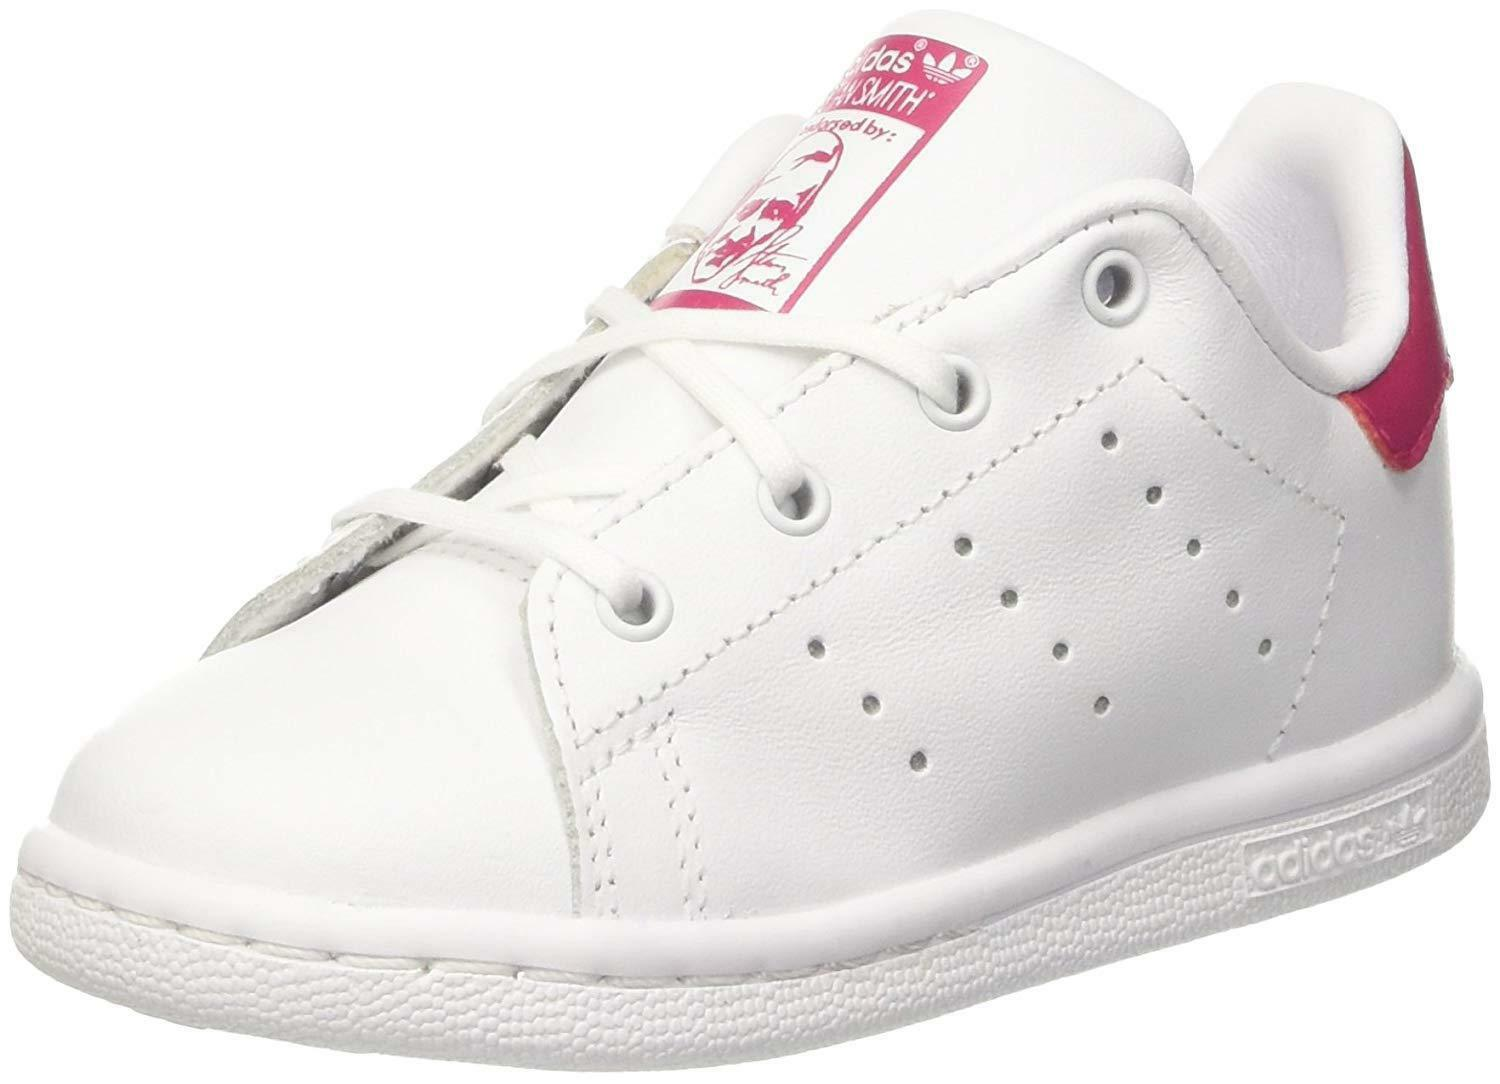 official photos 9f3b5 ac244 Adidas stan smith i scarpe sportive bambina bianche bb2999